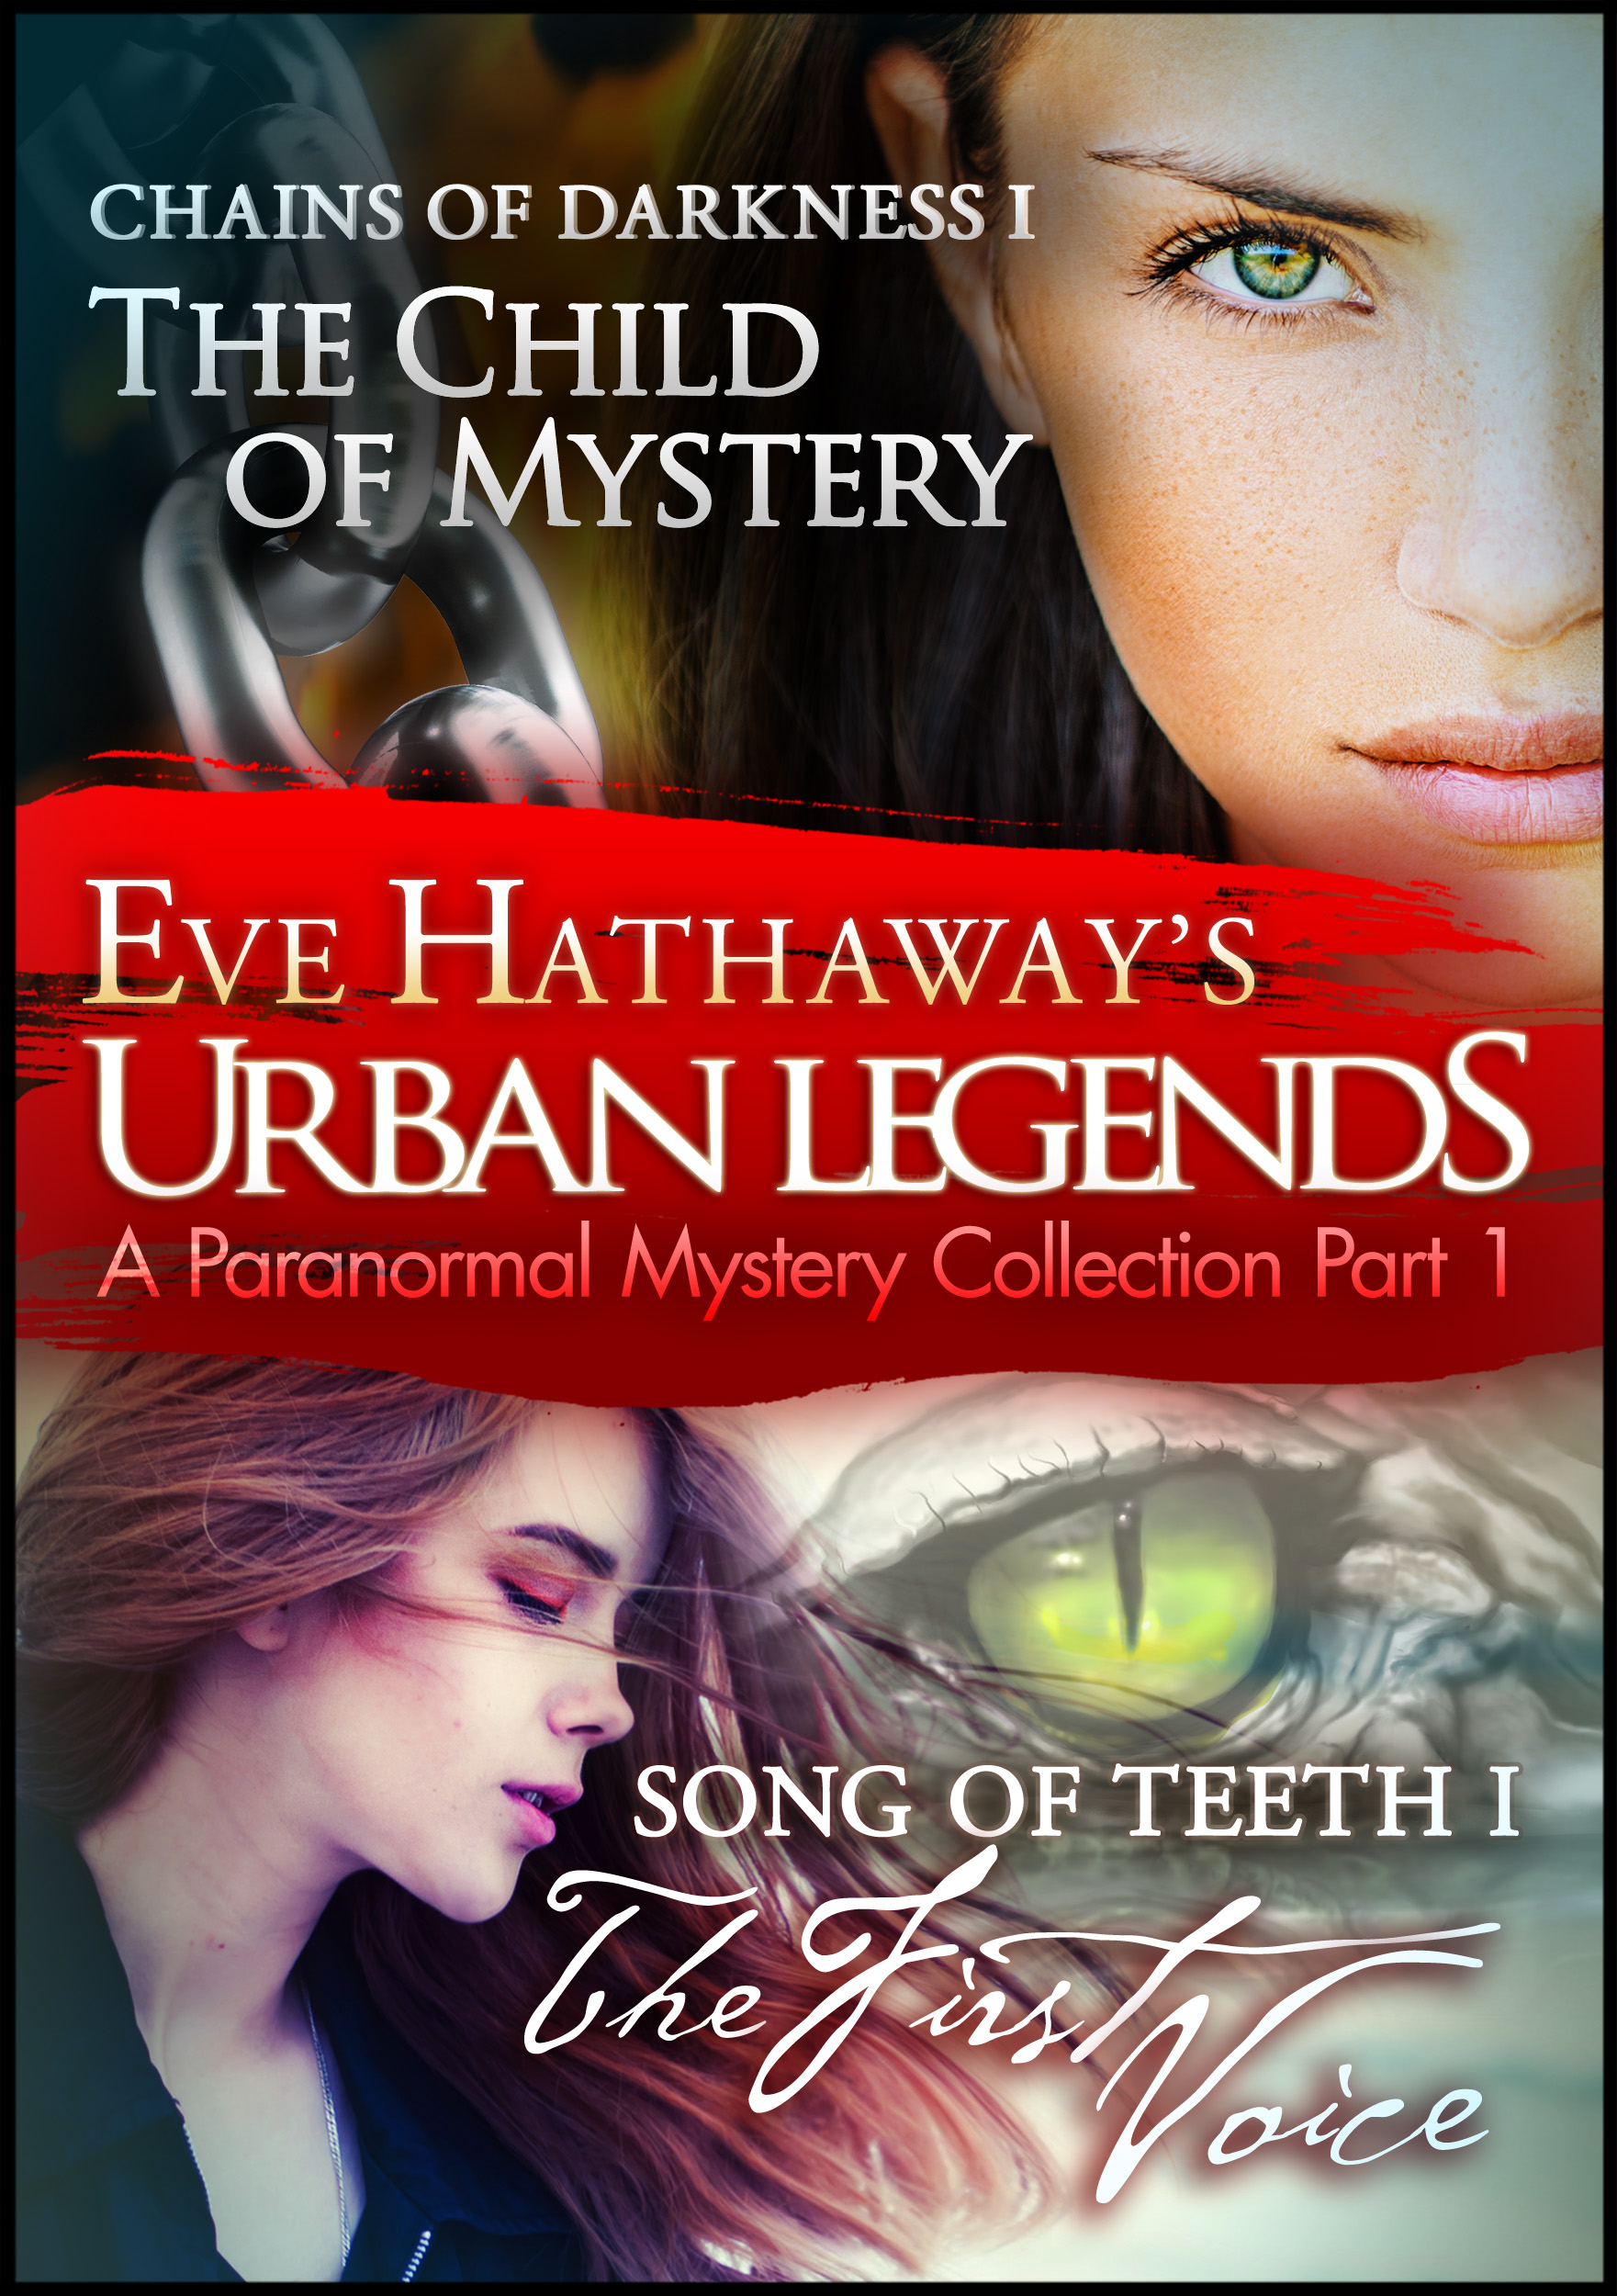 Eve Hathaway - Urban Legends: An Eve Hathaway's Paranormal Mystery Collection Part 1